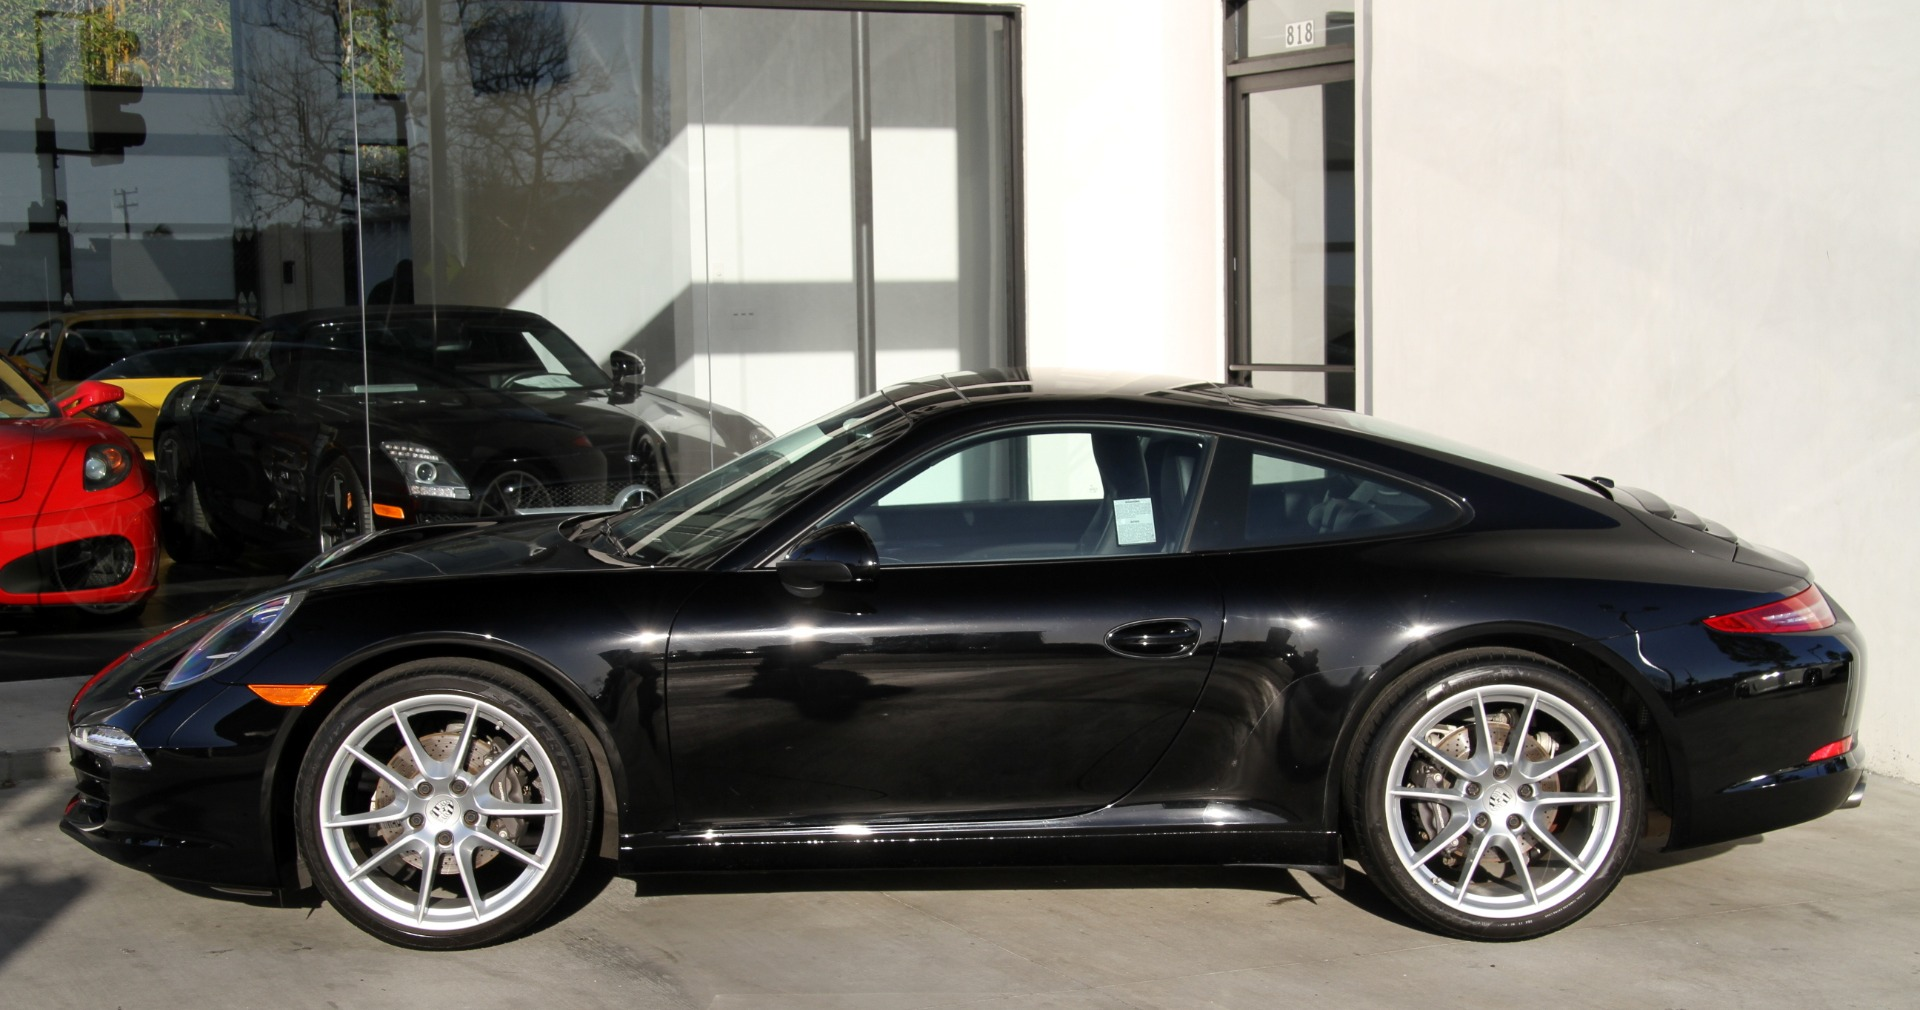 2013 porsche 911 carrera low miles stock 6097 for sale near redondo beach ca ca. Black Bedroom Furniture Sets. Home Design Ideas